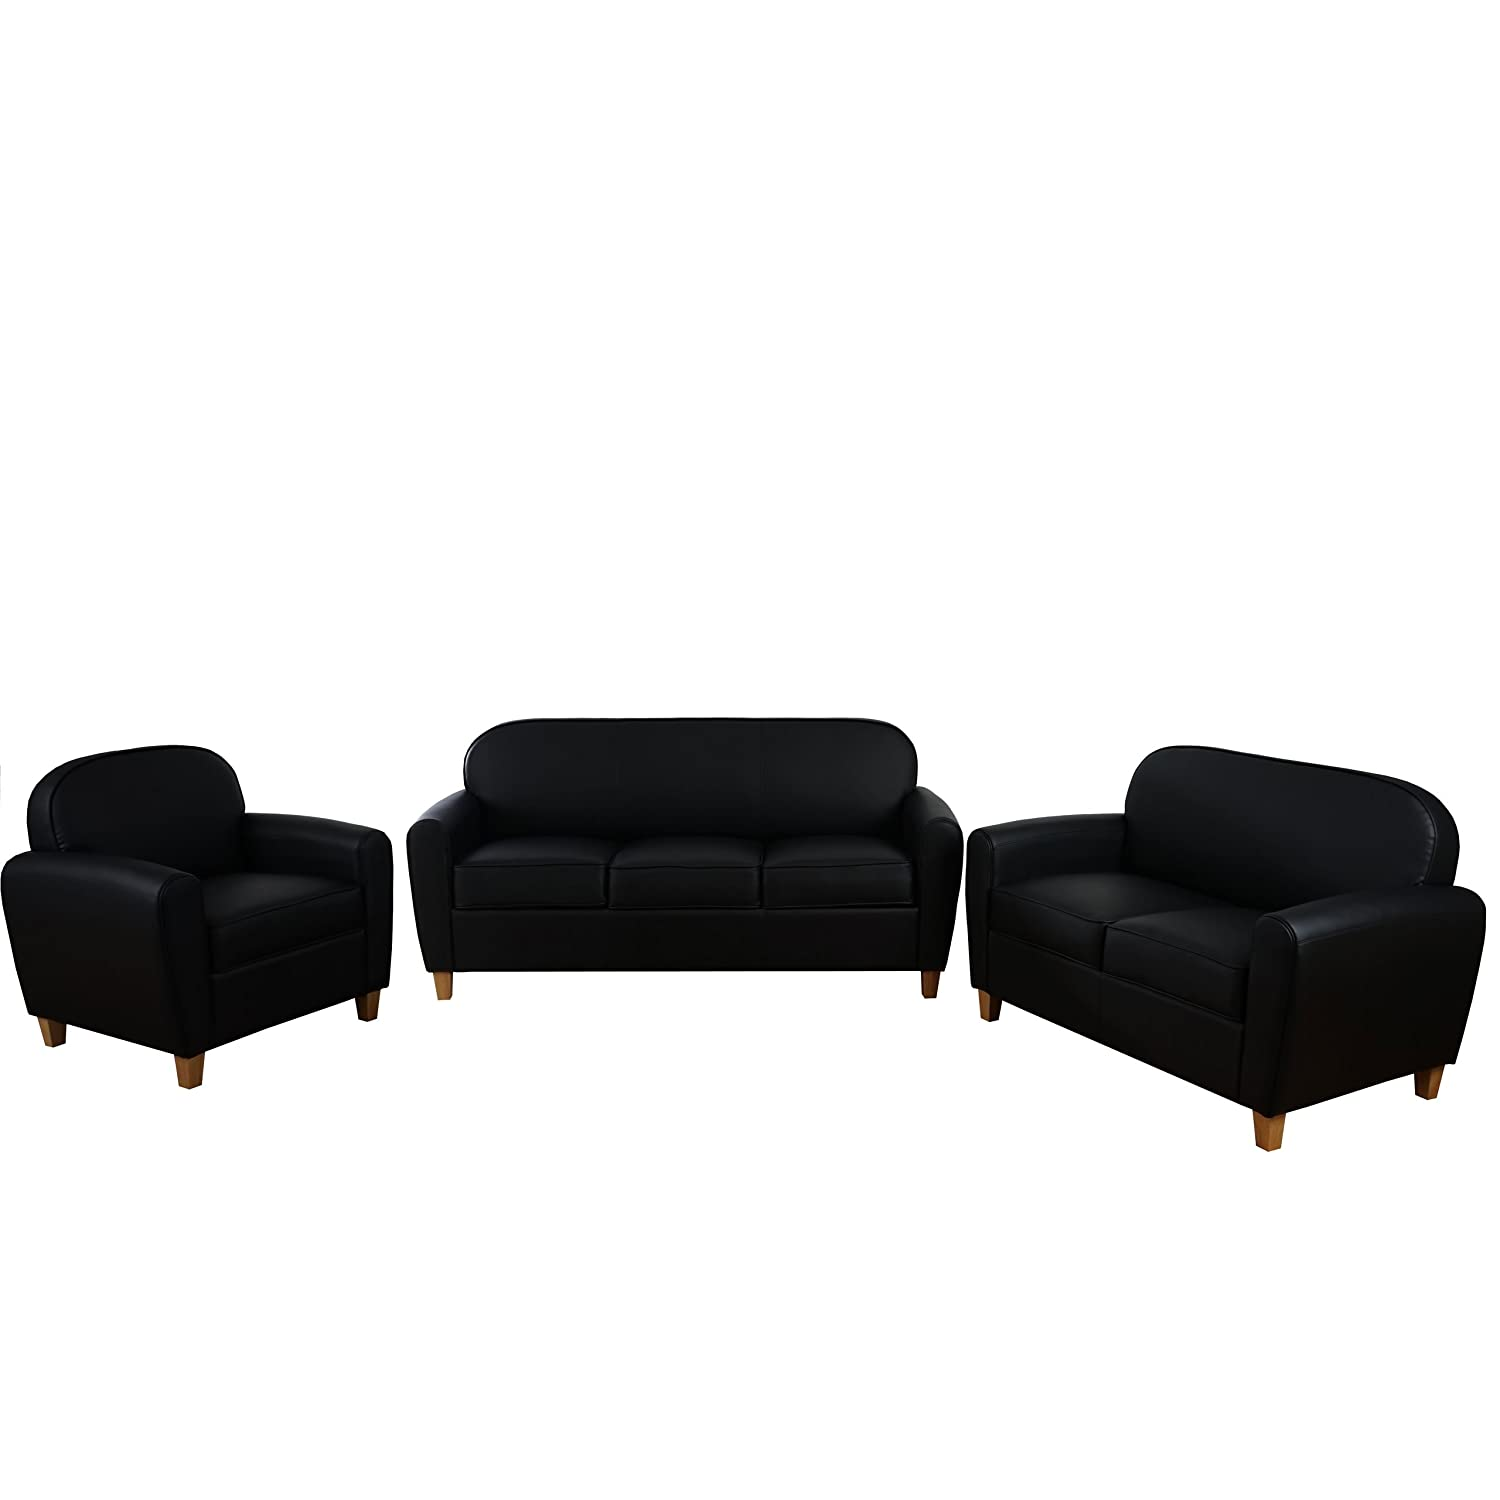 3 2 1 sofagarnitur malm t377 couch loungesofa retro 50er jahre design schwarz kunstleder. Black Bedroom Furniture Sets. Home Design Ideas